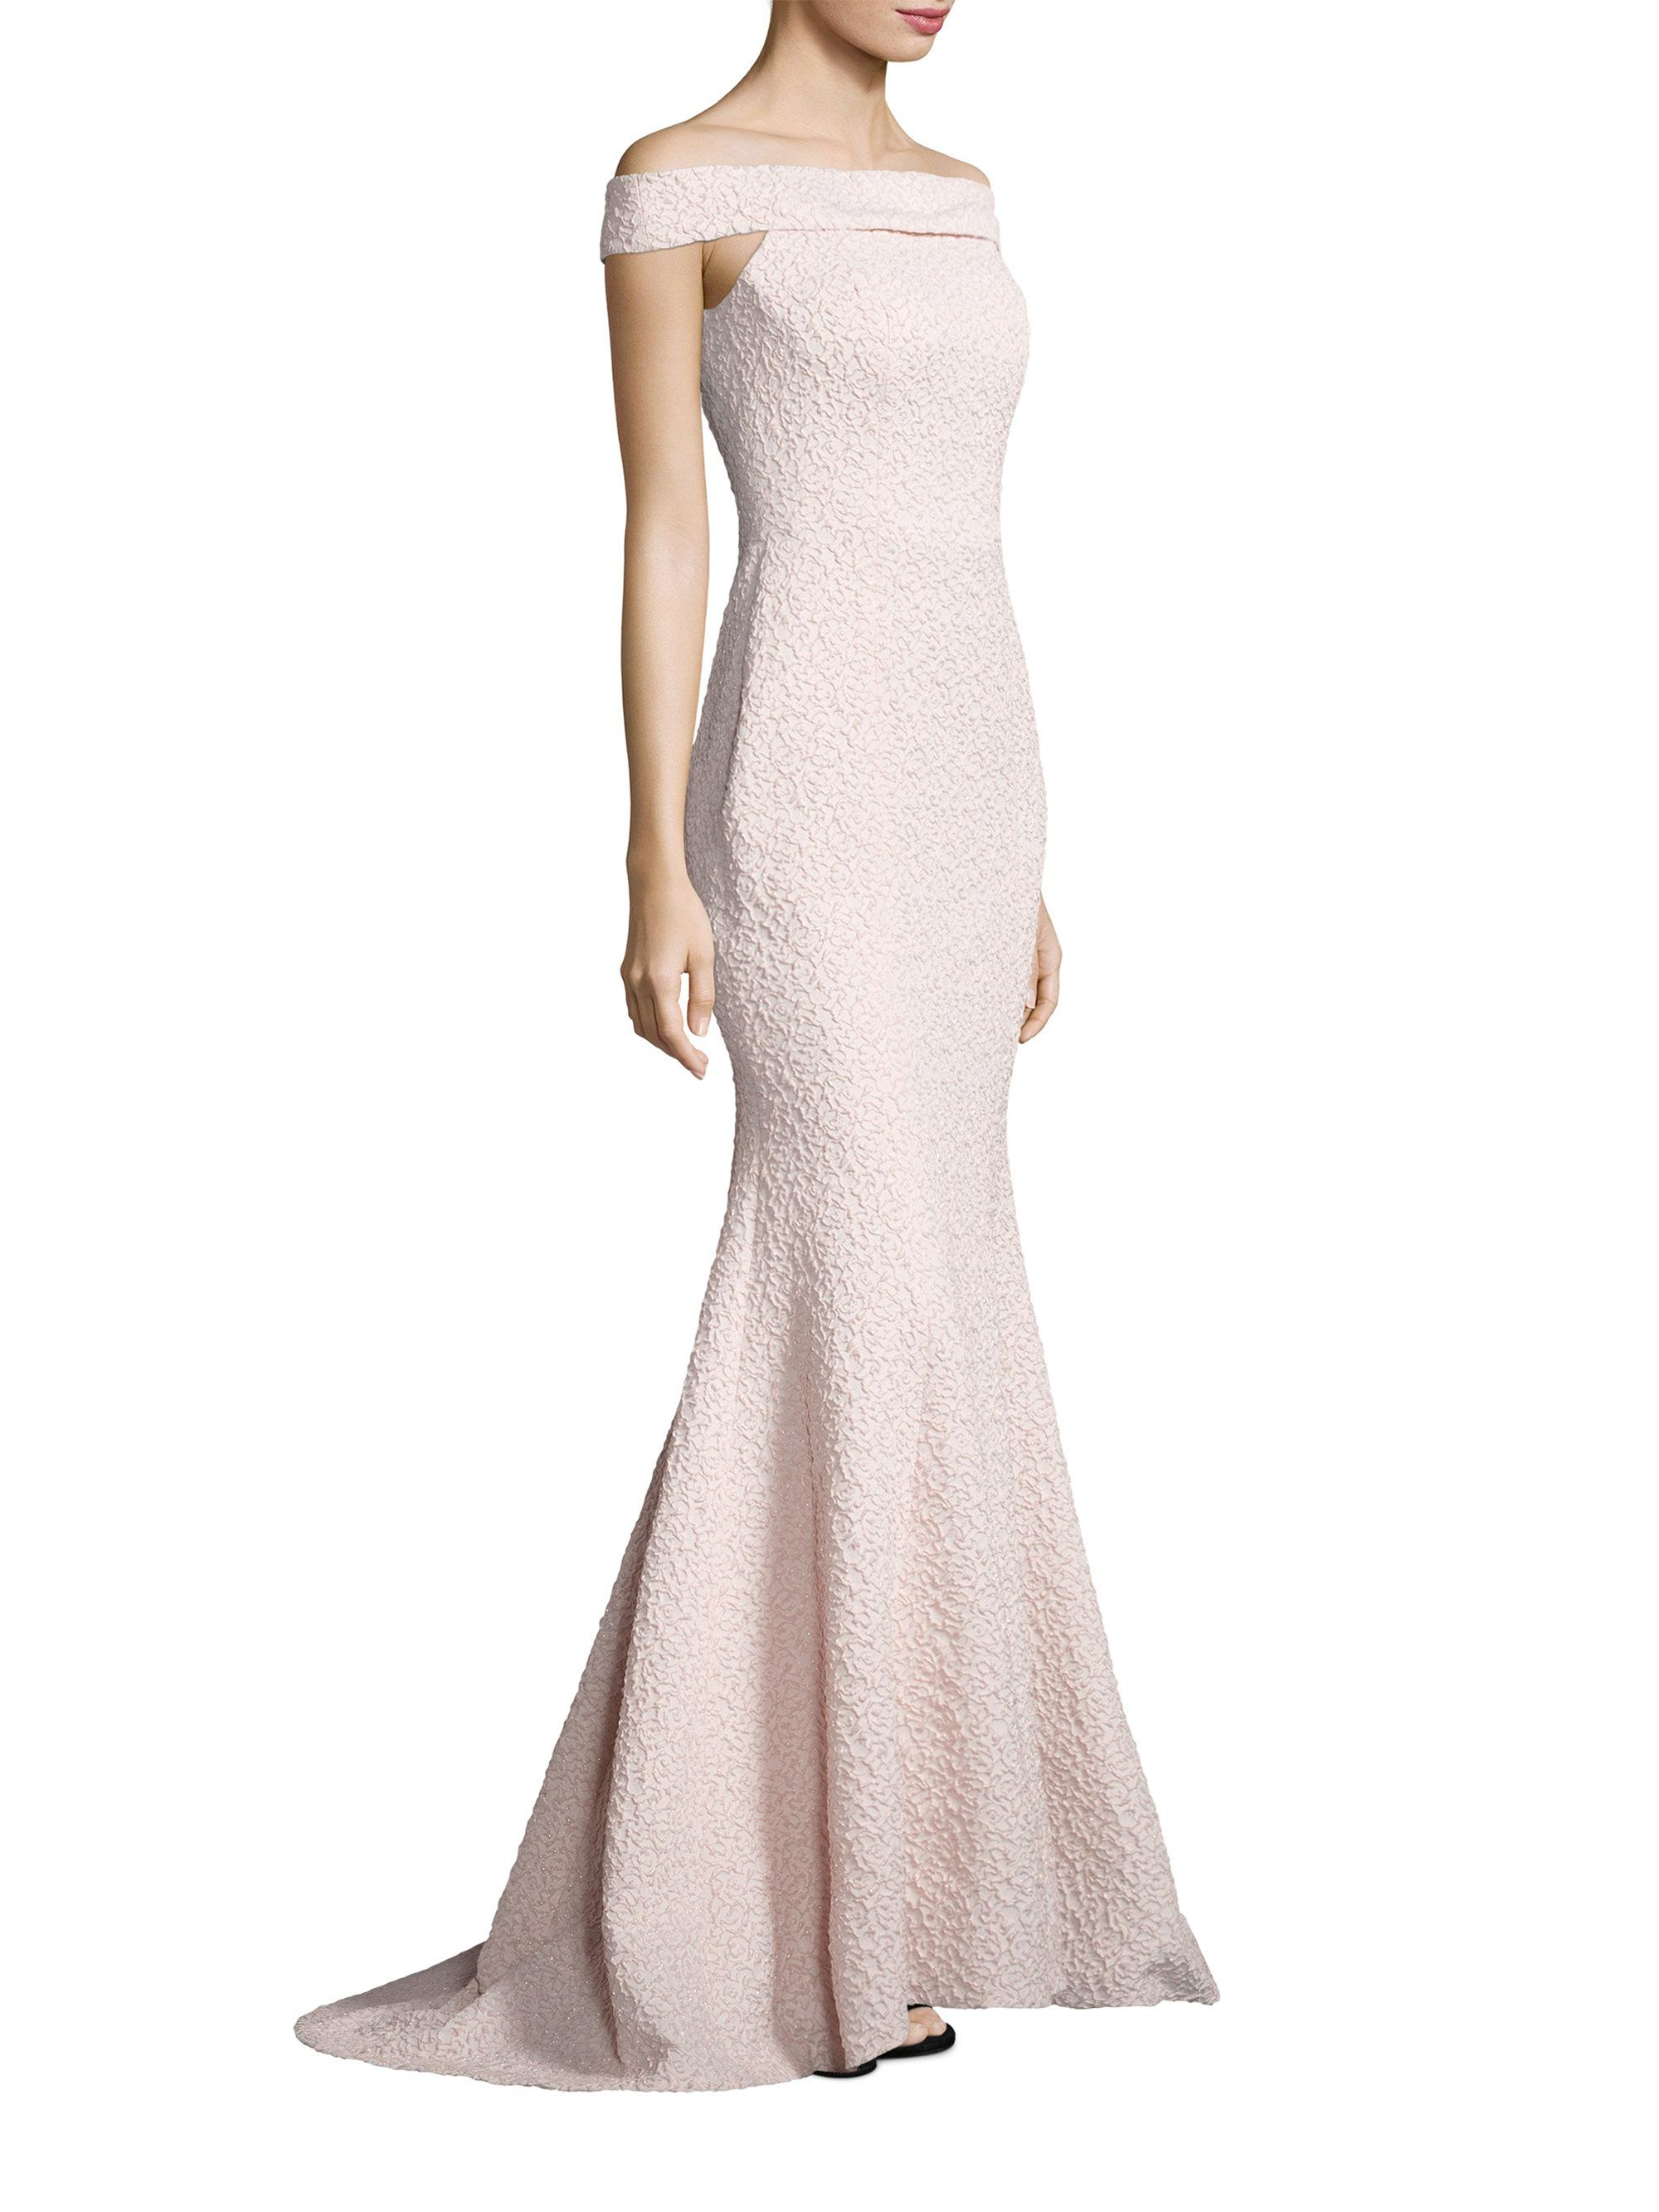 bbc567a88c00 Alberto Makali Textured Off-the-shoulder Gown in Pink - Lyst